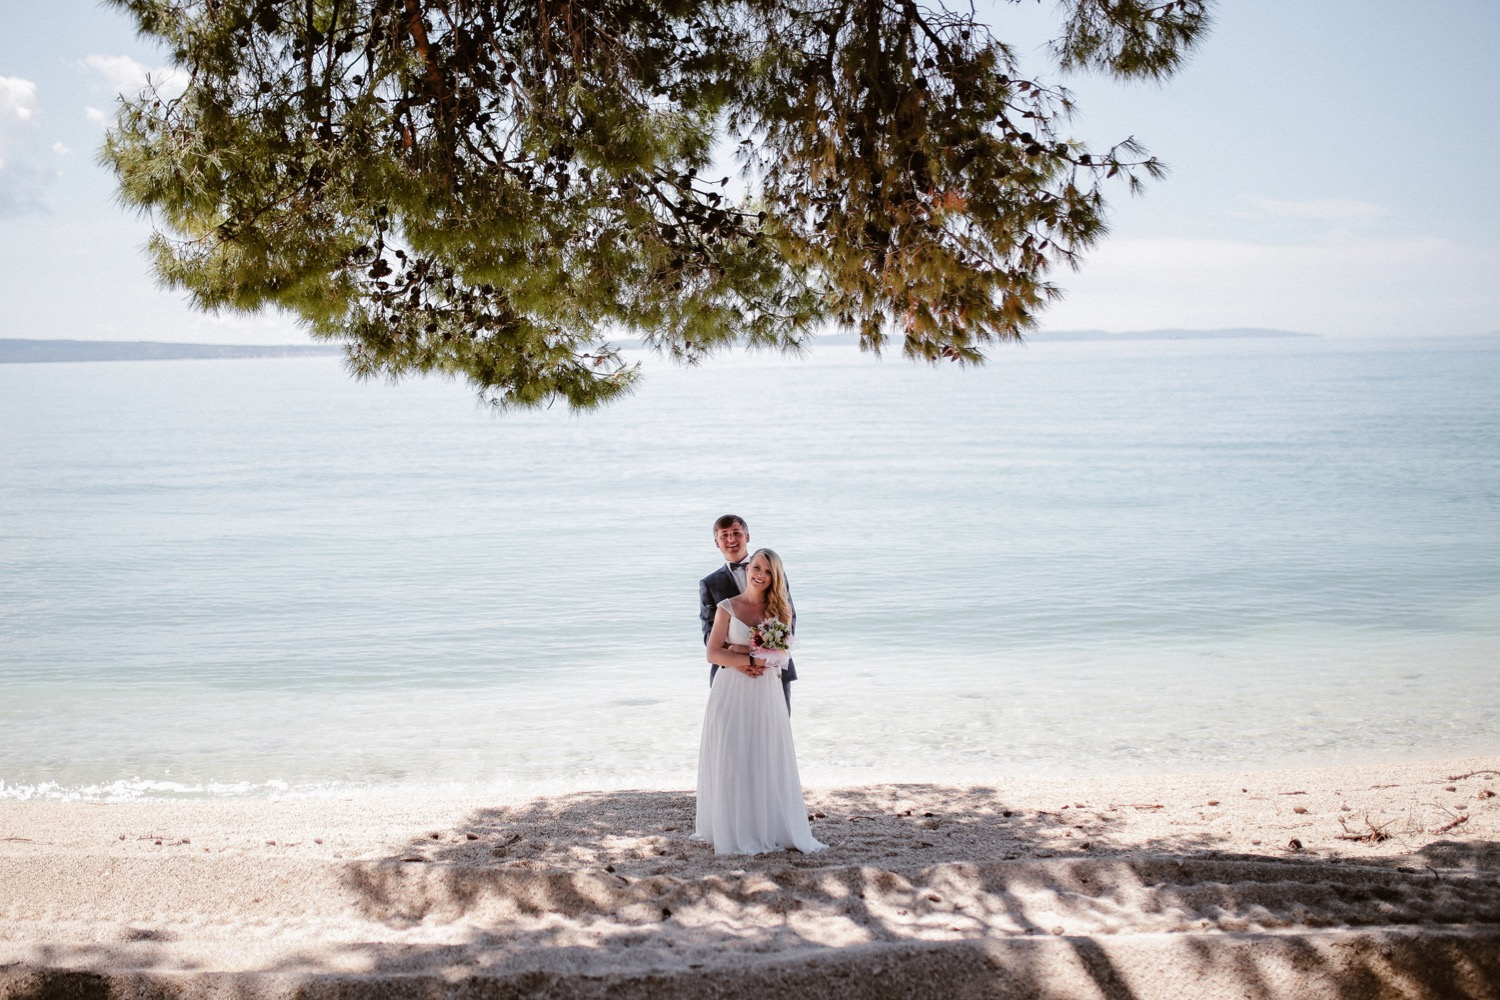 Croatia beach elopement hilke thomas love and ventures photography 49 | Croatia Elopement Photographer and Videographer